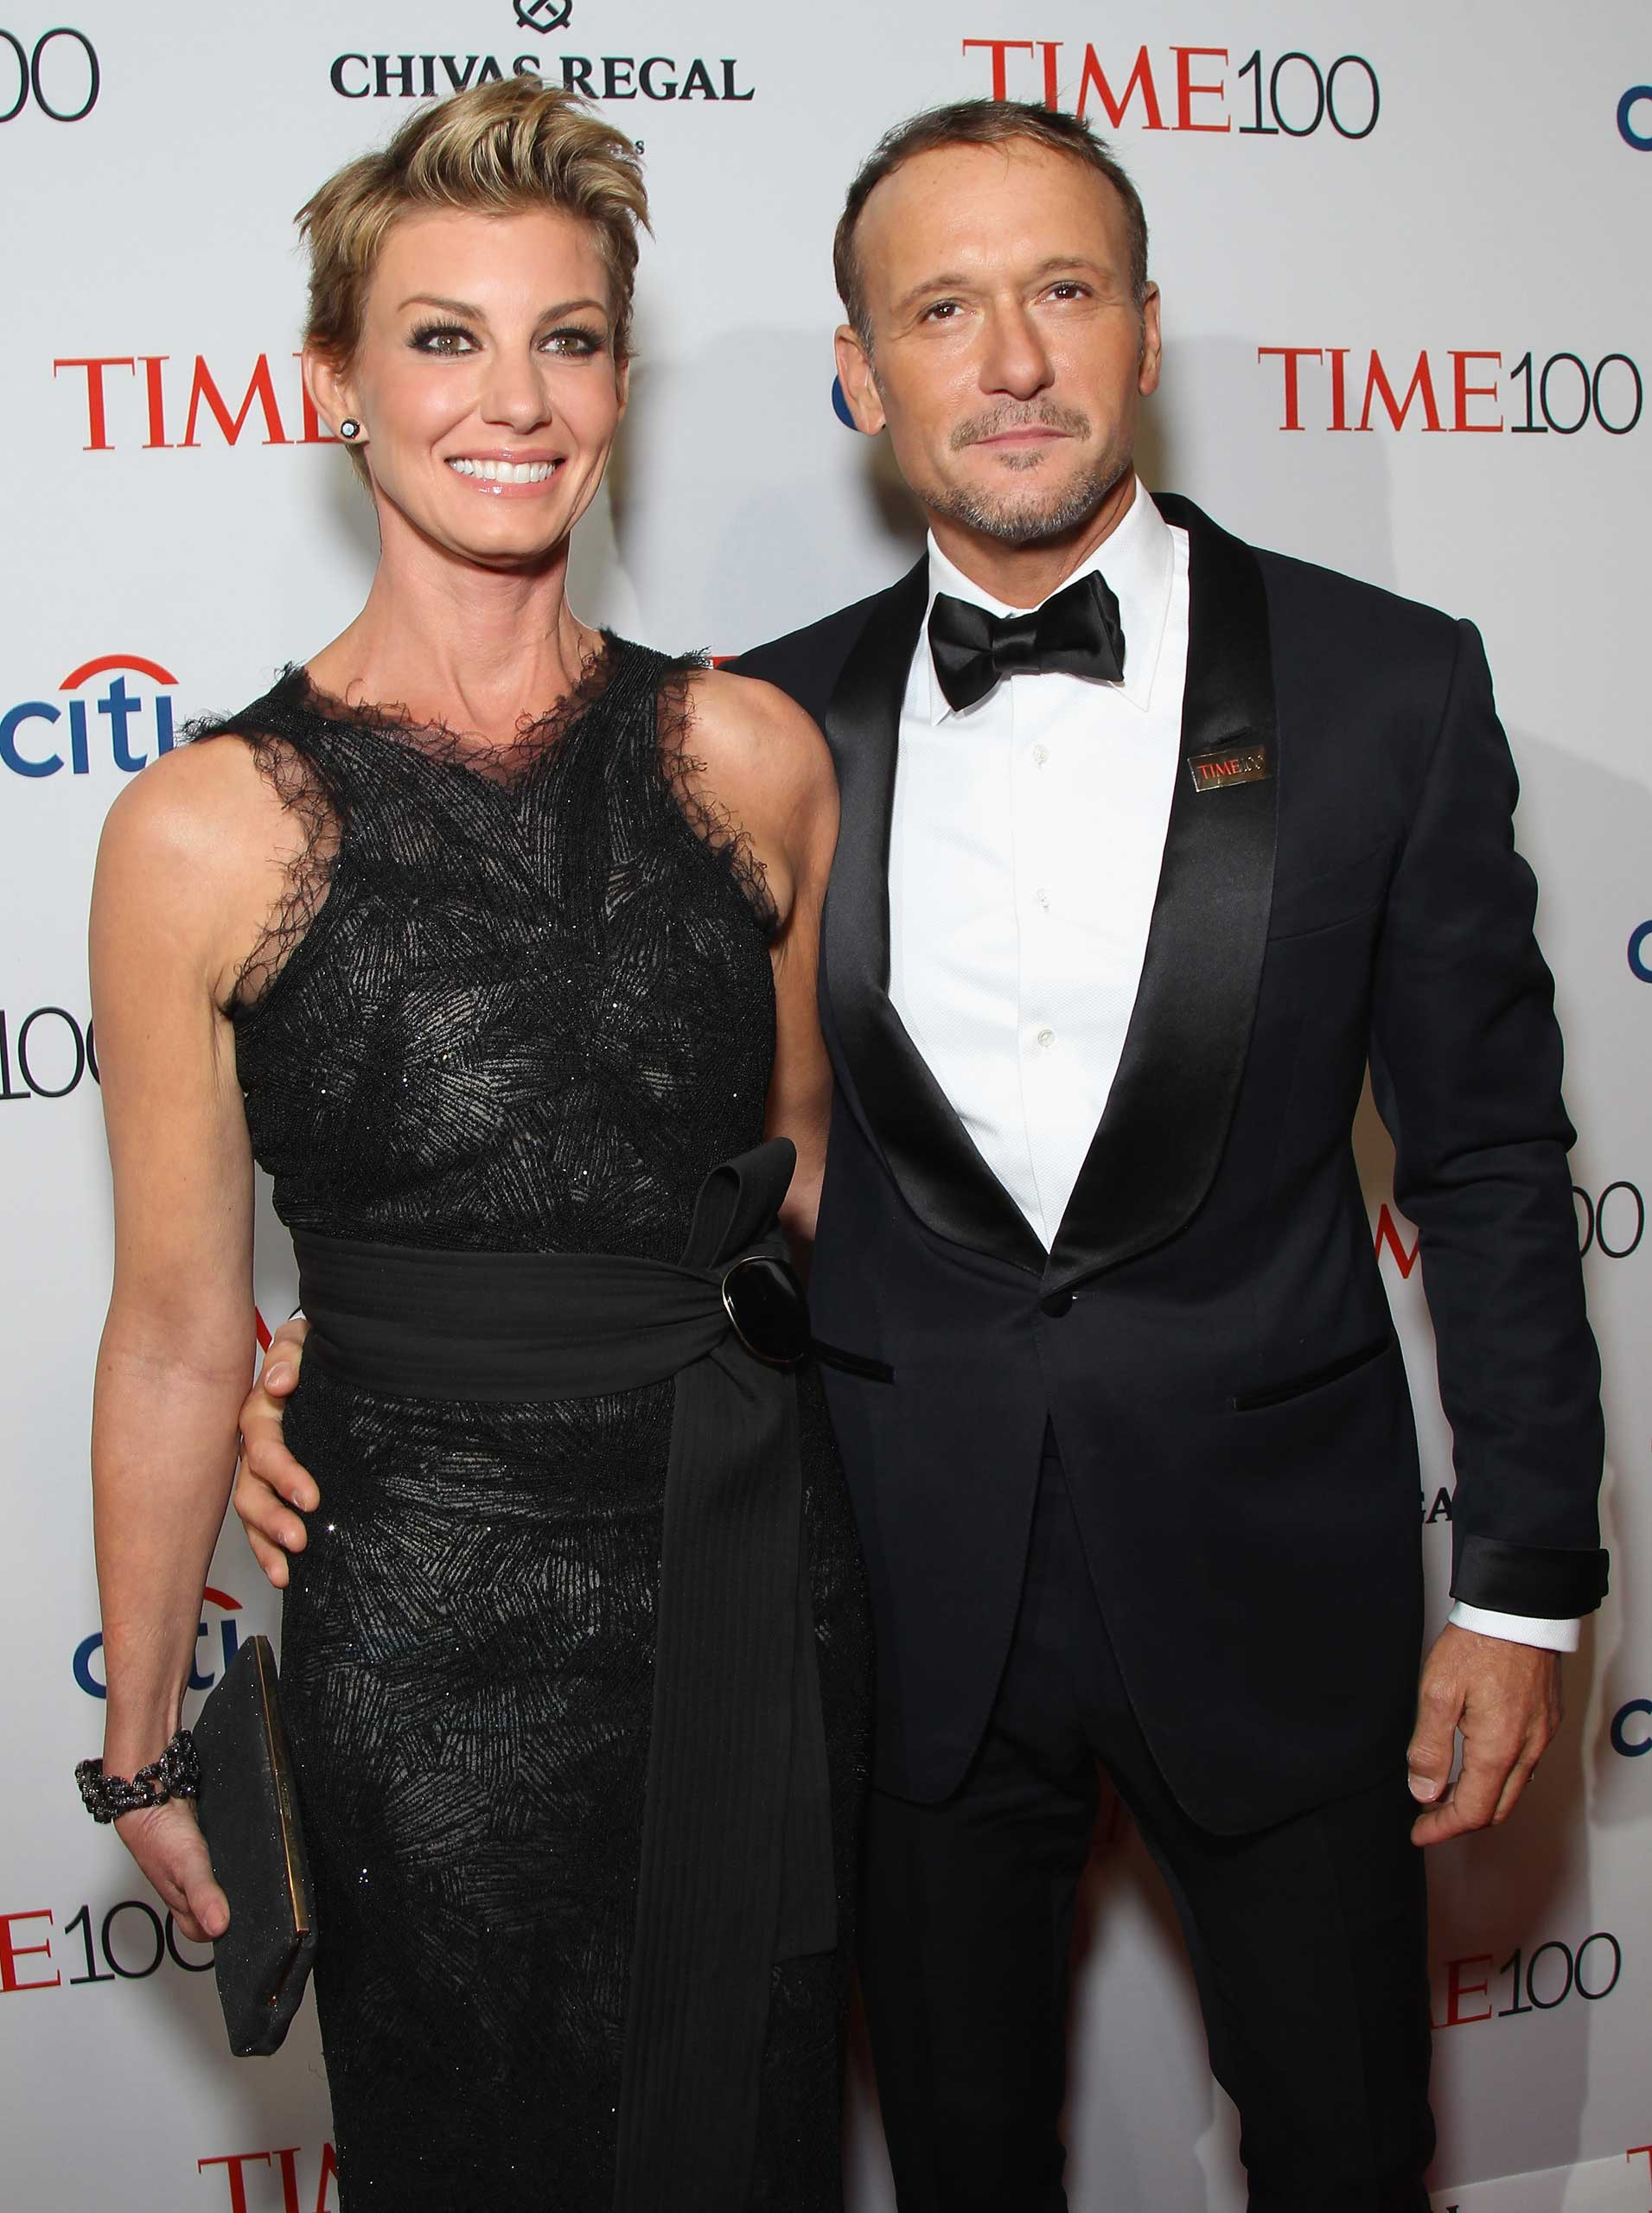 Faith Hill and Tim McGraw attend the TIME 100 Gala at Jazz at Lincoln Center in New York City on Apr. 21, 2015.